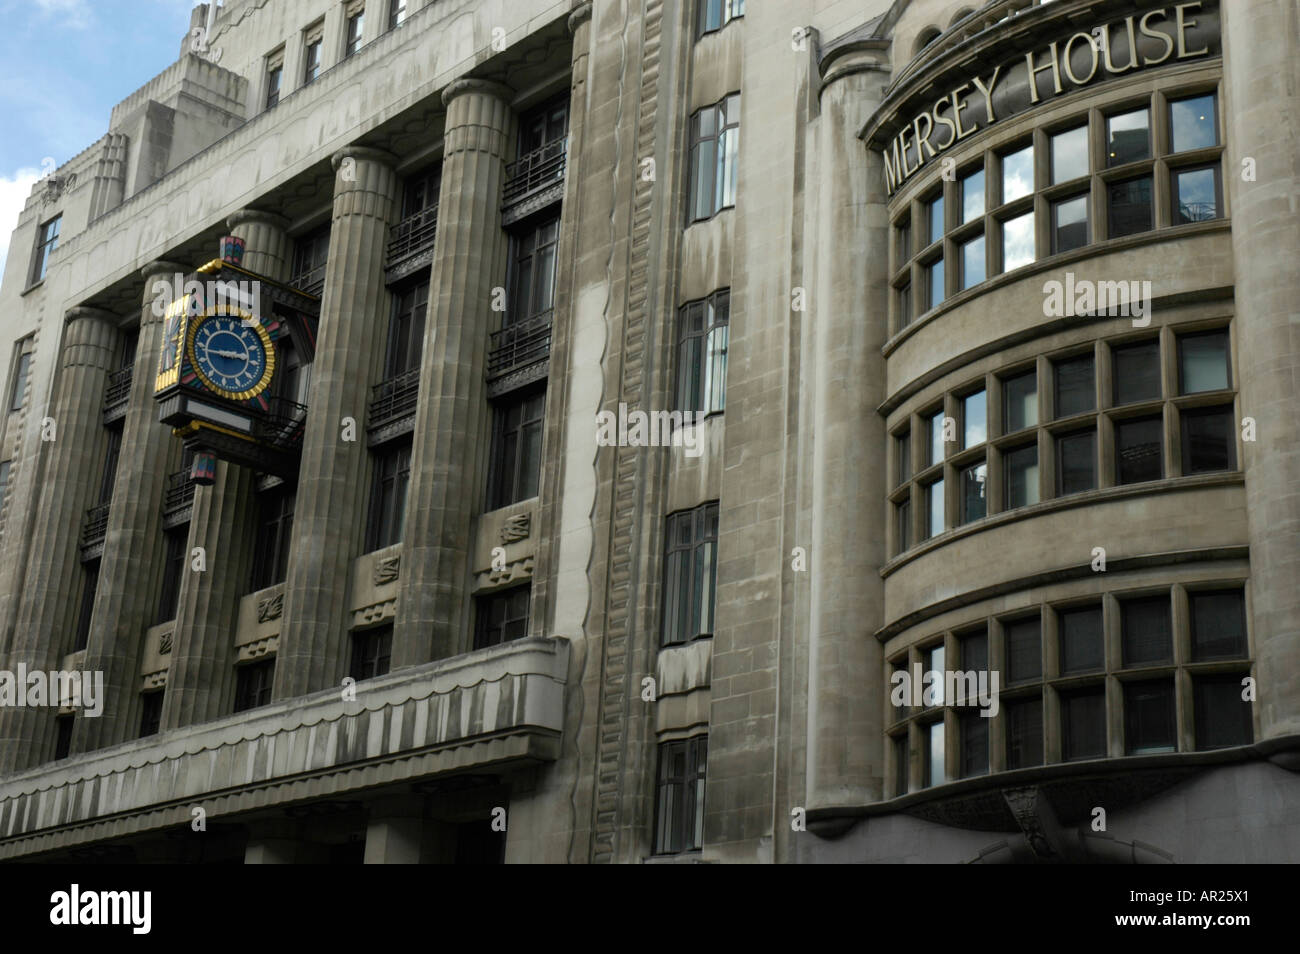 mersey house art deco building in fleet street london england stock photo royalty free image. Black Bedroom Furniture Sets. Home Design Ideas